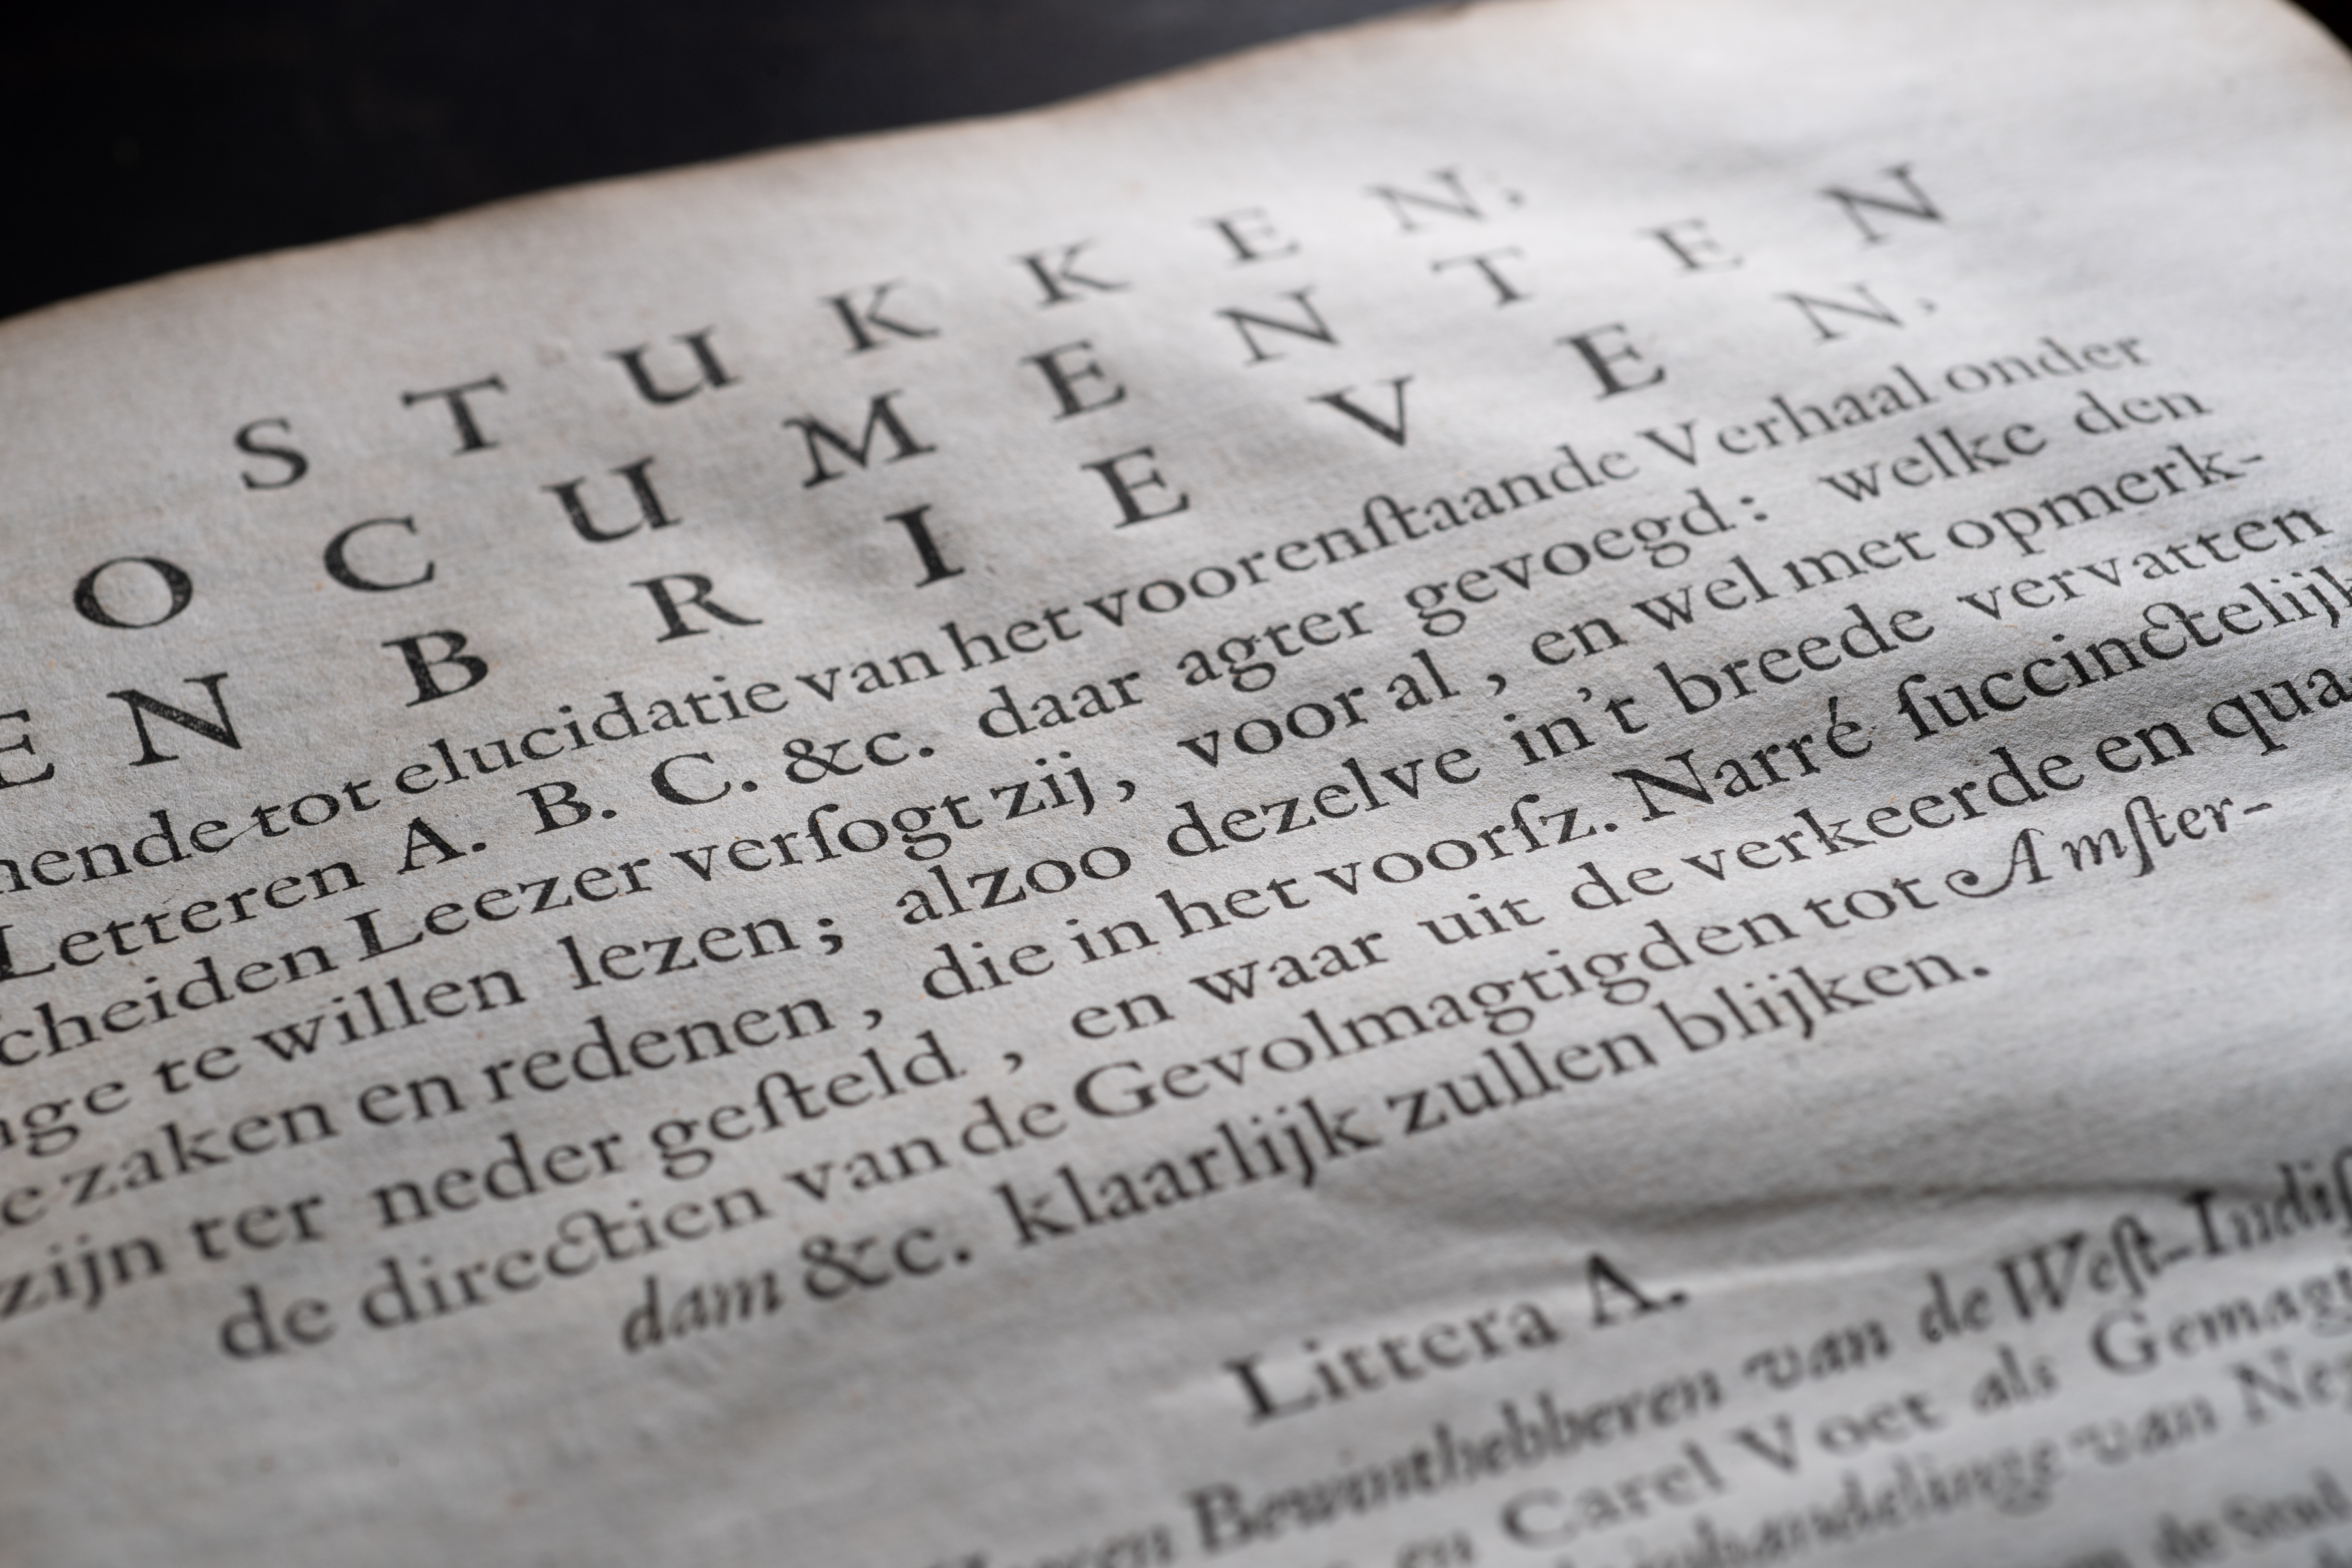 Detail of a printed book shows a page with text in Dutch.